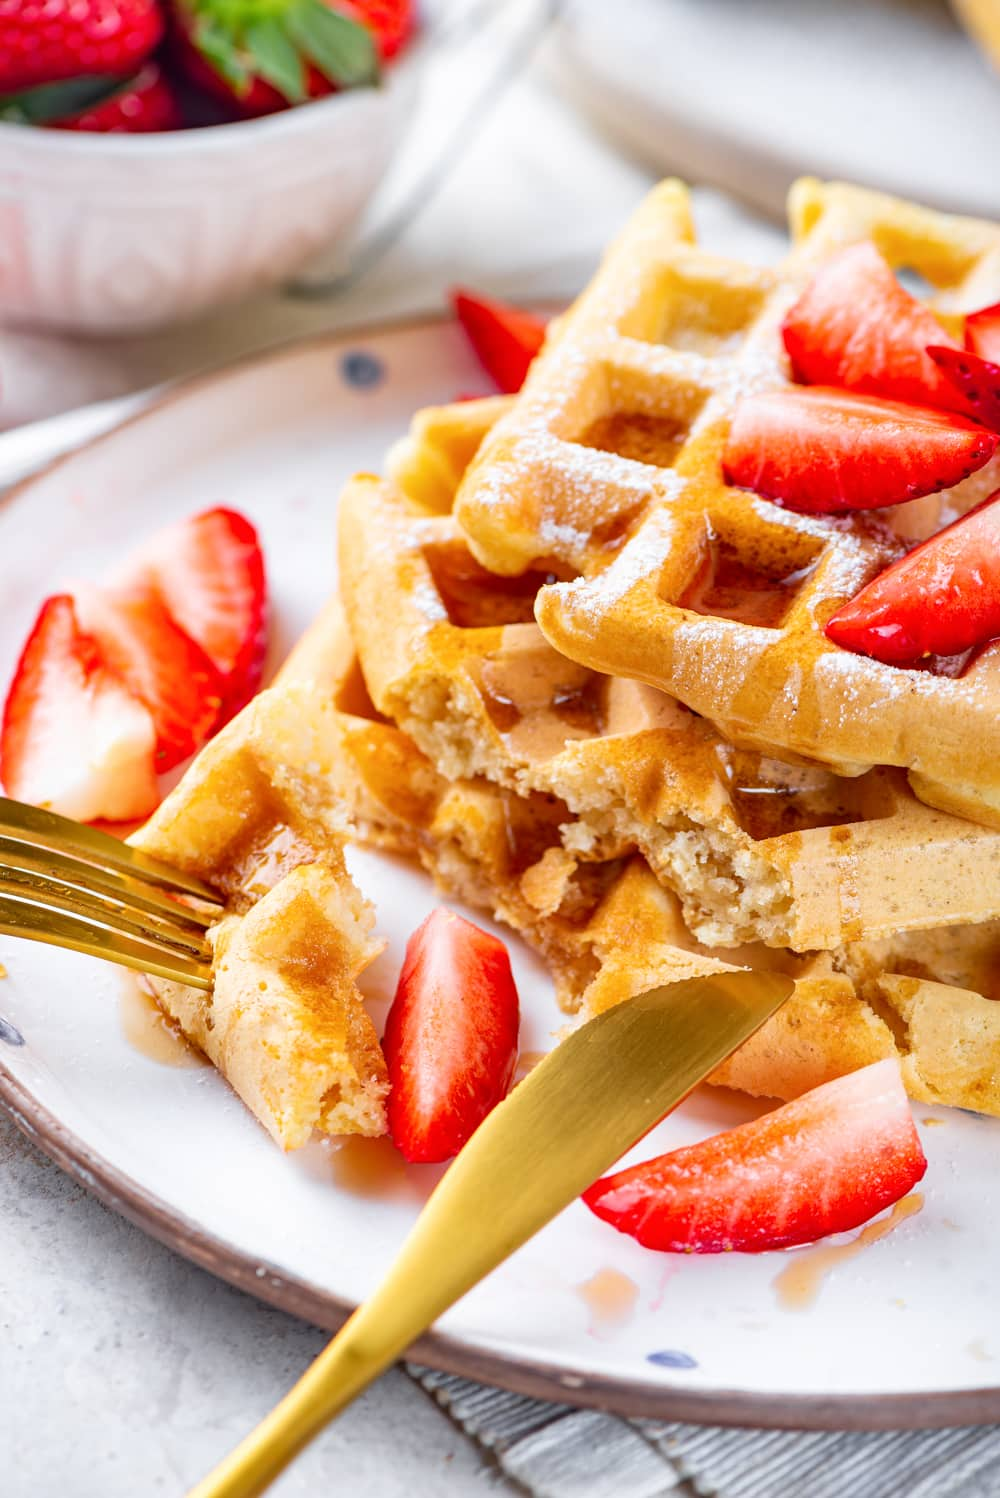 A white plate with three square vegan waffles stacked on top of each other with maple syrup and cut strawberries on them. A gold fork is stabbed into a cut piece of waffle with a gold knife laying on the bottom waffle. The plate is on a white table.